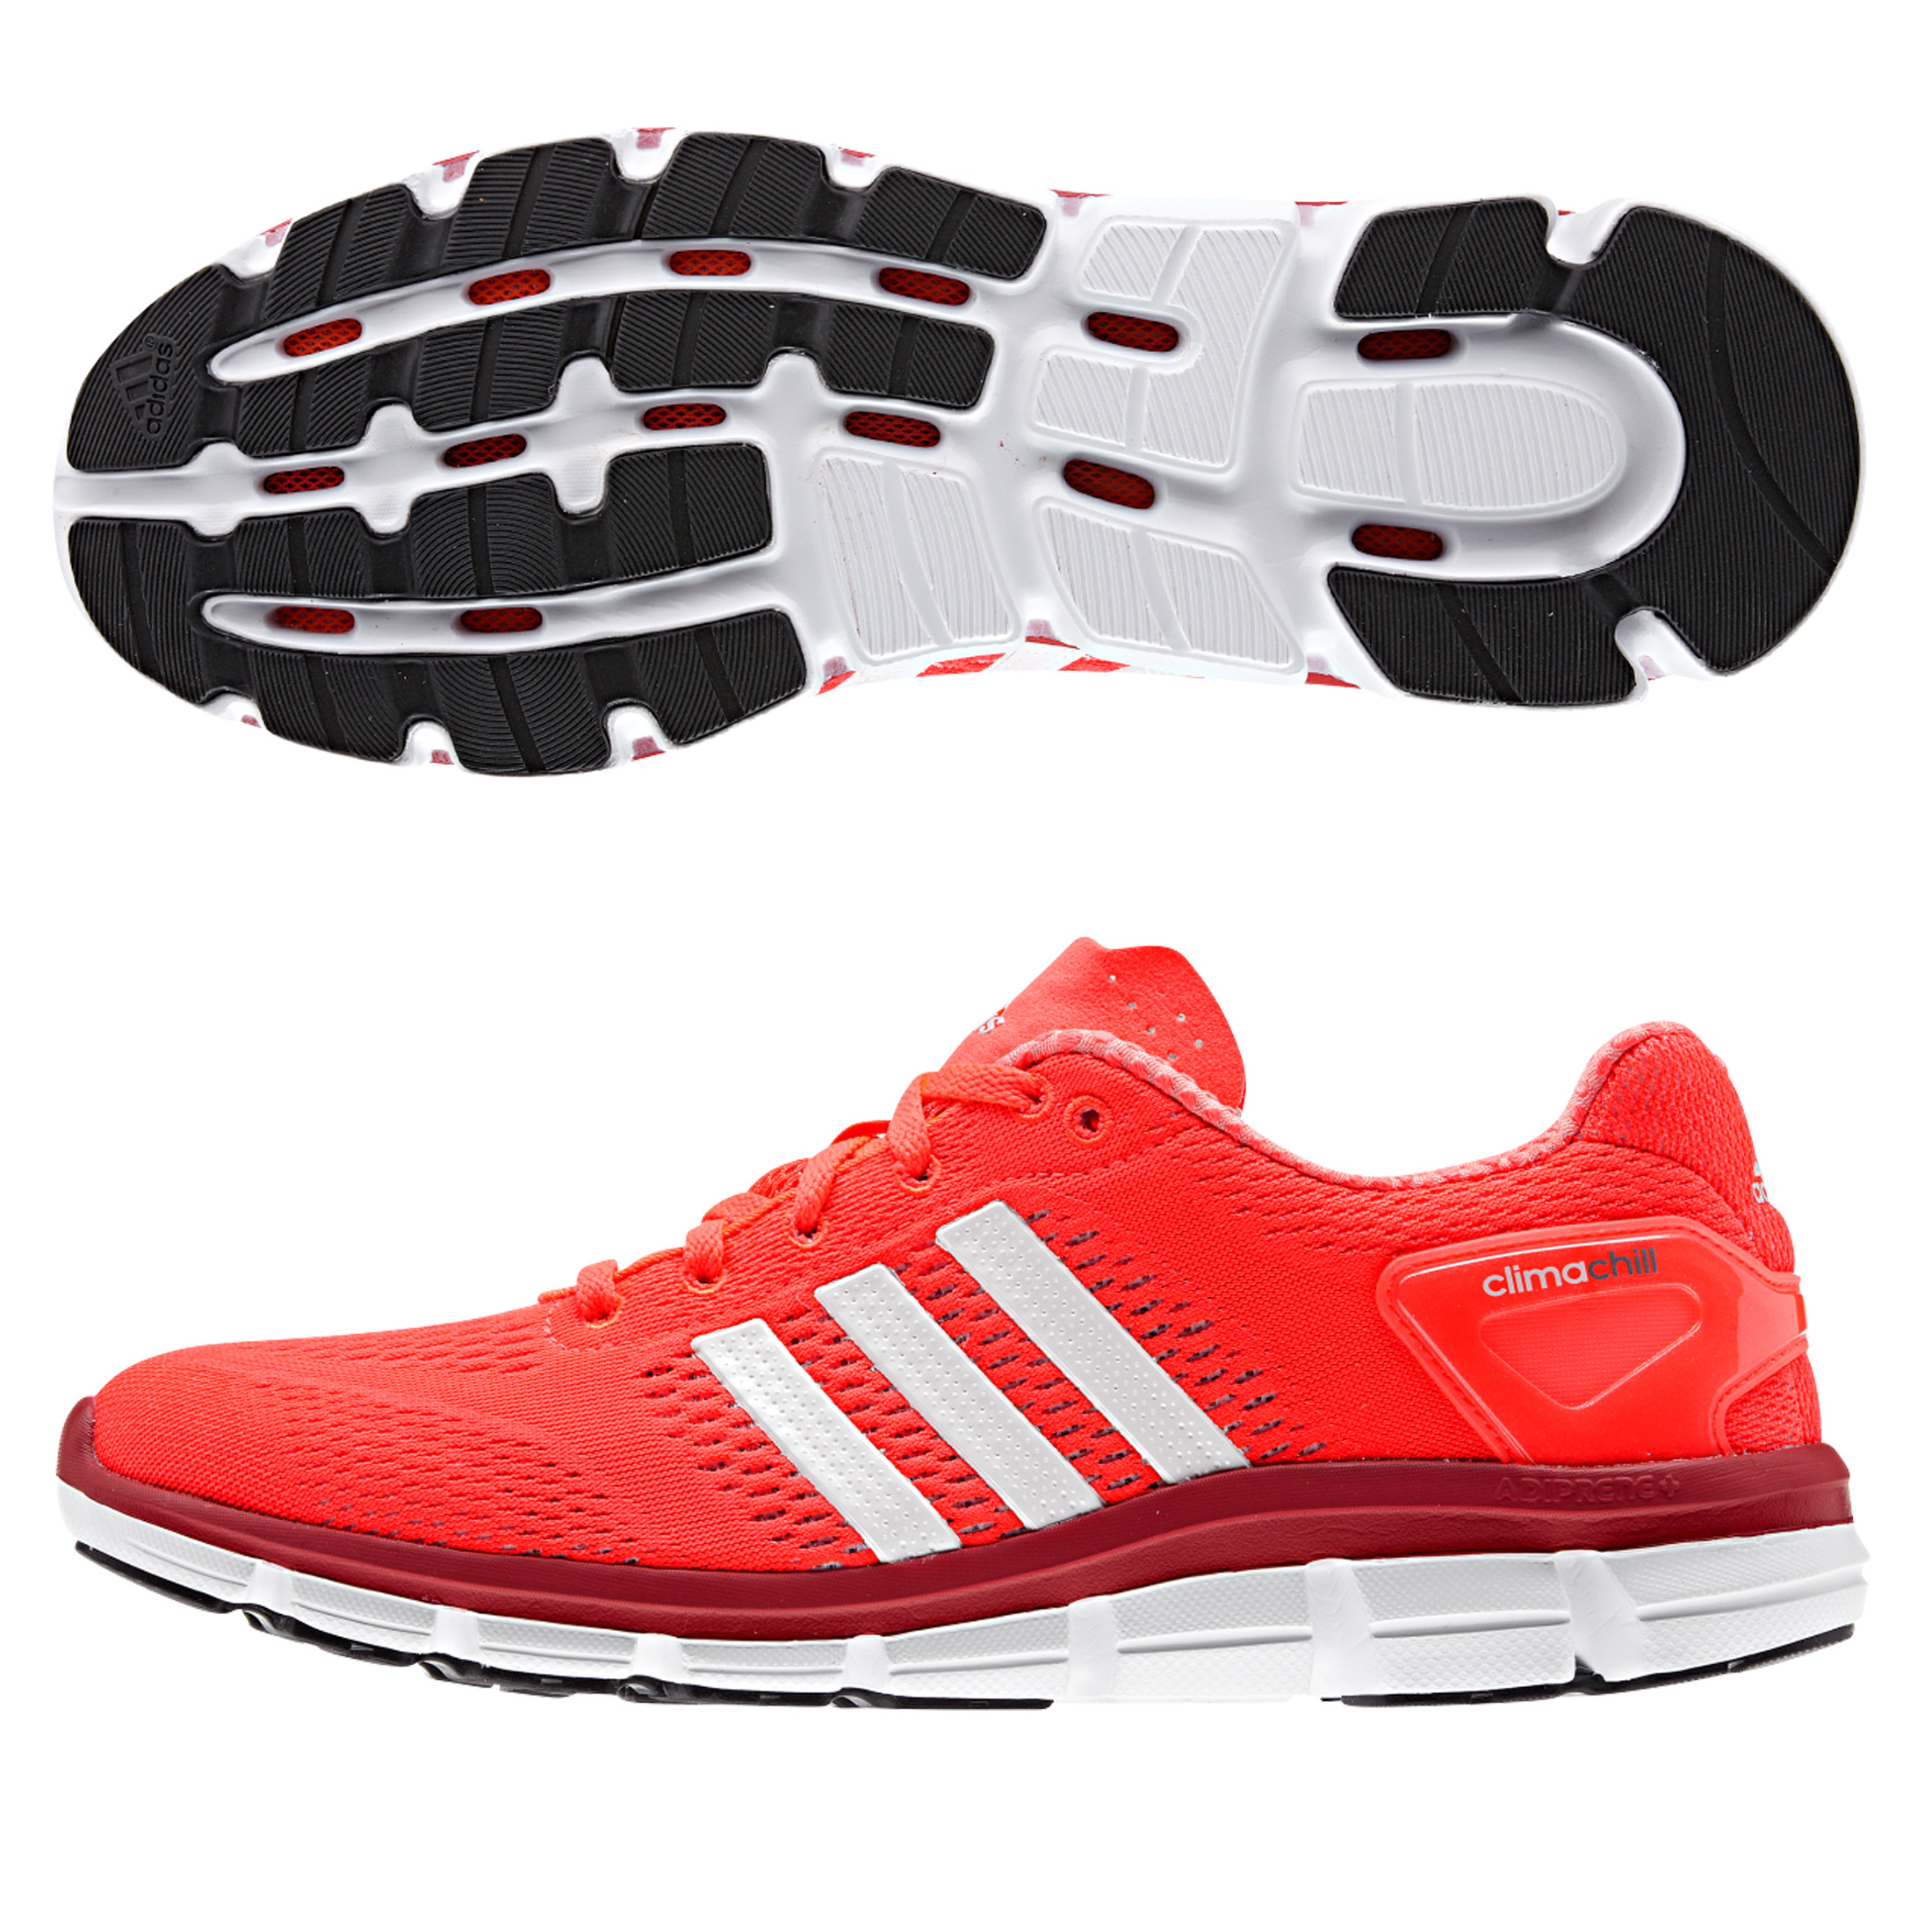 Adidas Climachill Ride Trainers Red